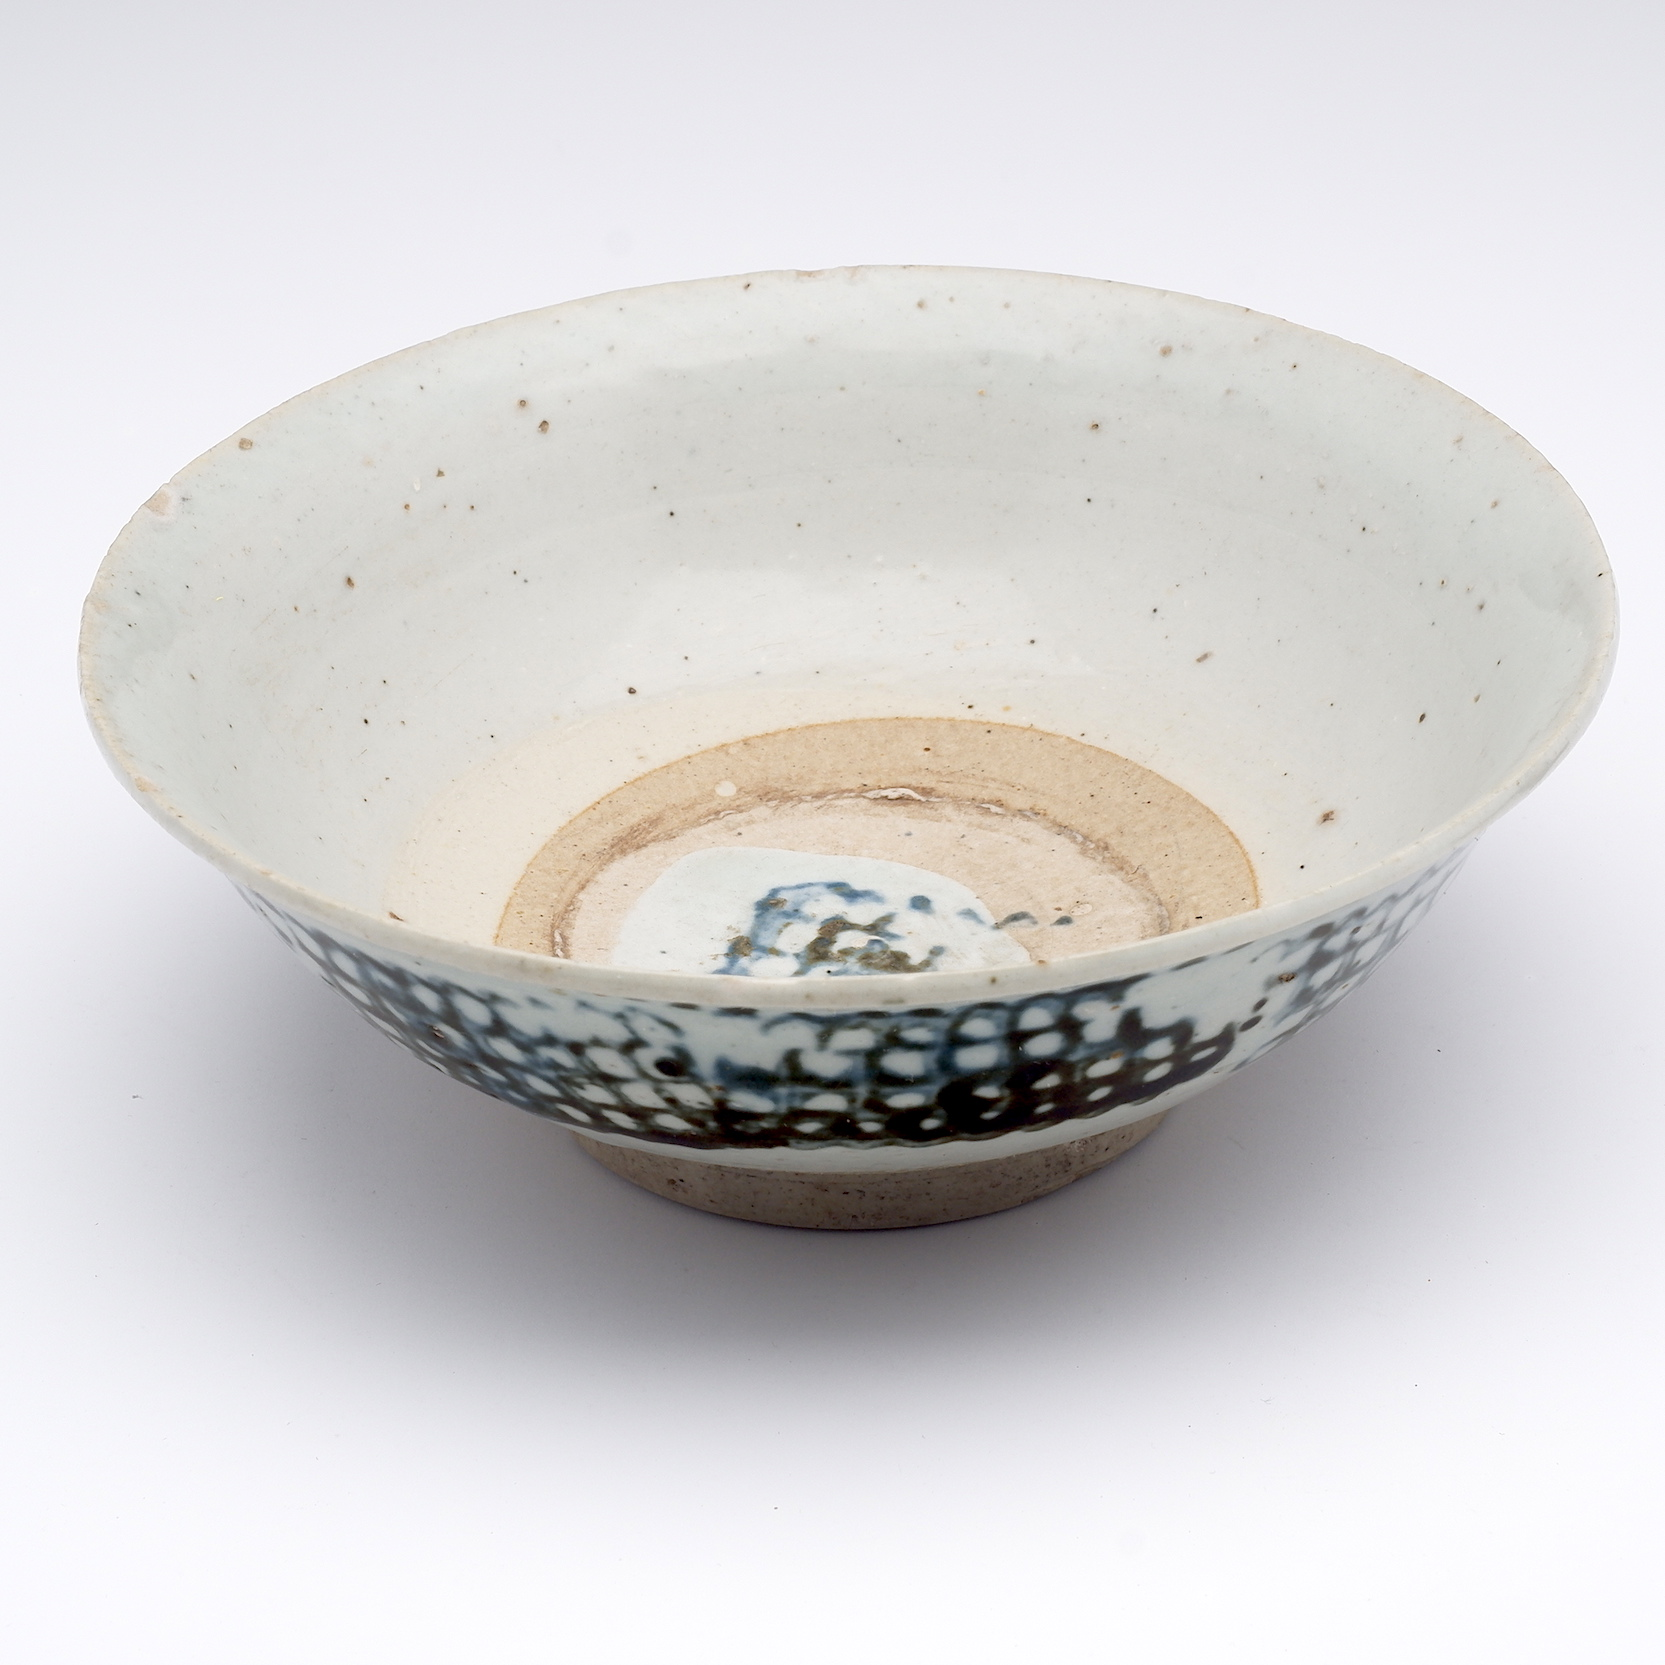 'Chinese Fujian Ware Bowl with Block Printed Decoration, Early 19th Century'